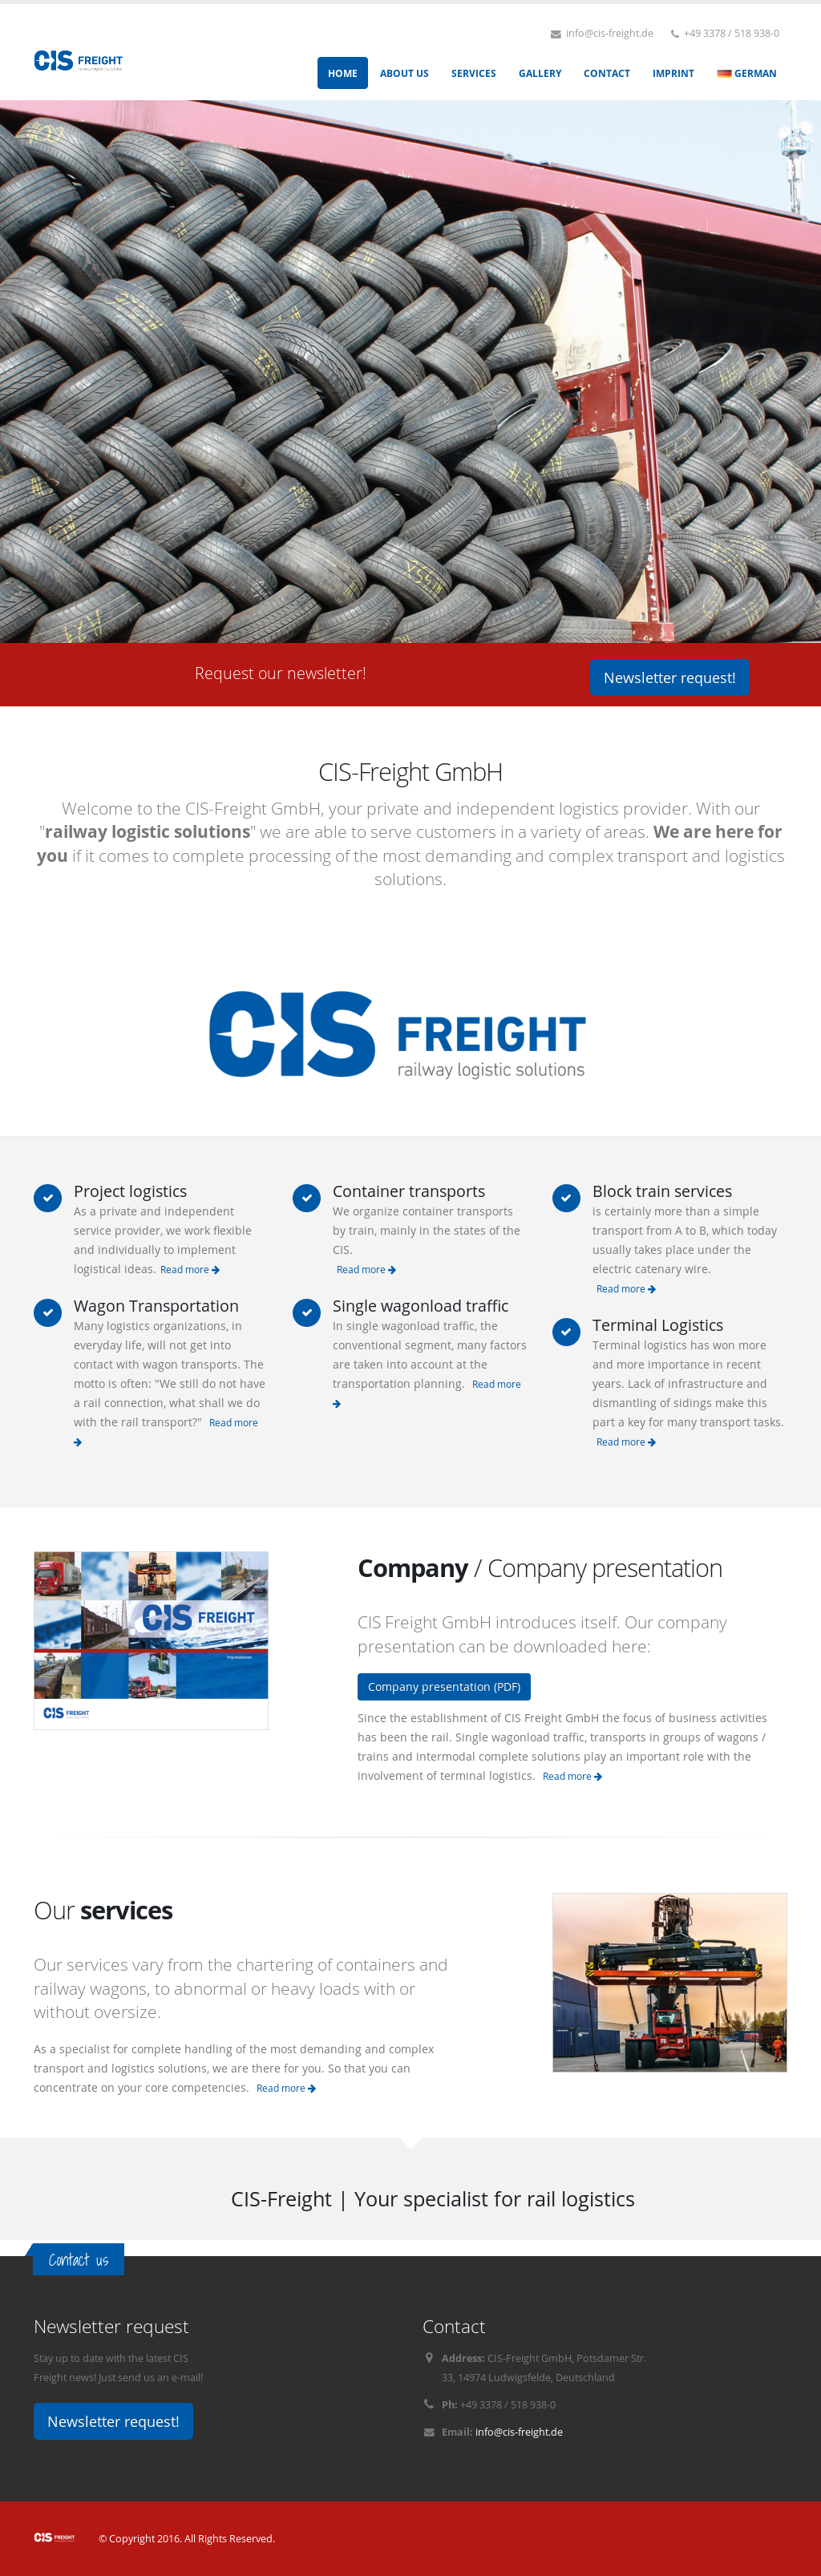 Cis-freight Competitors, Revenue and Employees - Owler